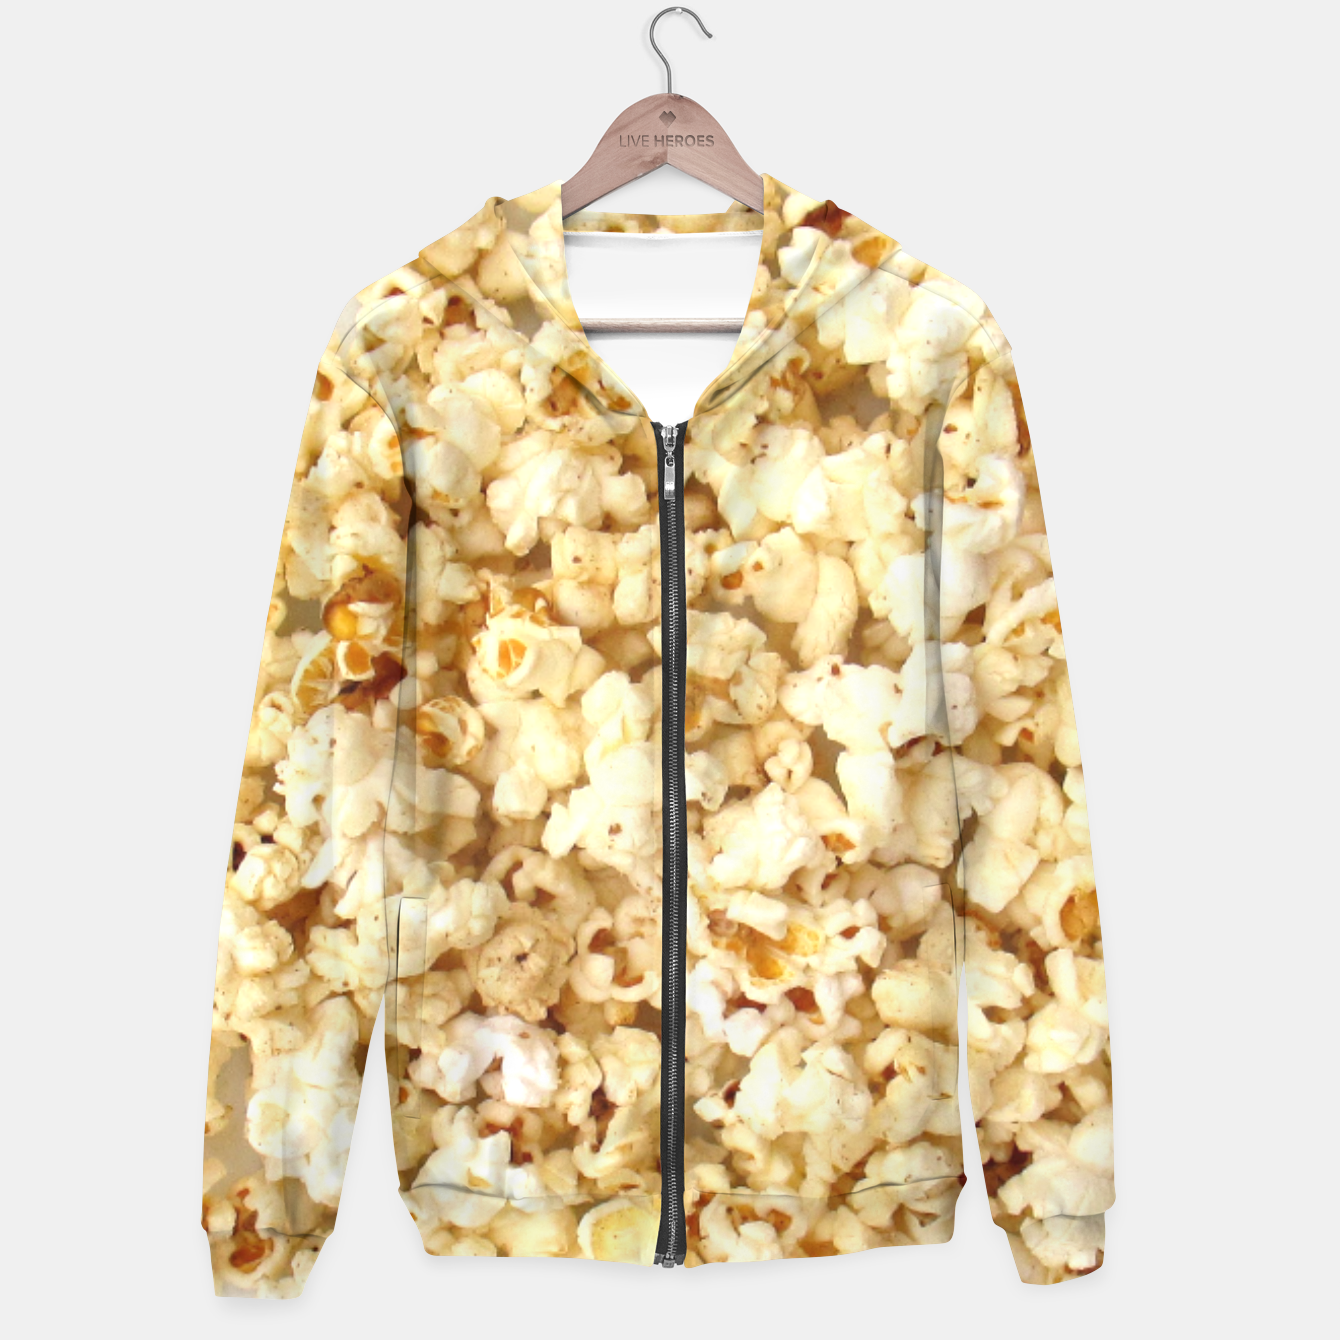 Image of Popcorn Lover (2) [Yummy] - Live Heroes